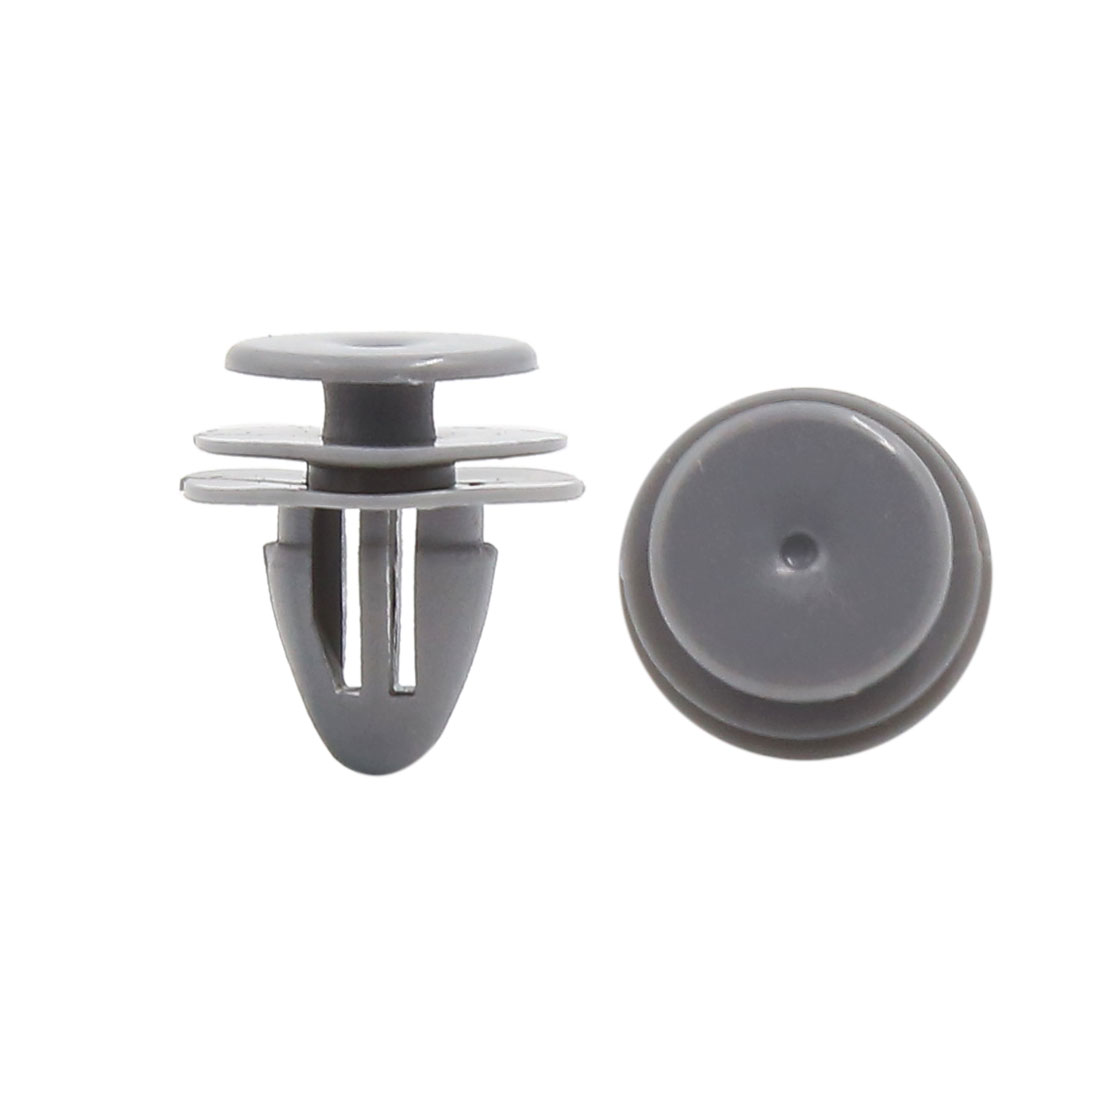 20Pcs 9mm Hole Gray Plastic Fender Bumper Boot Retainer Rivet Clip for Car